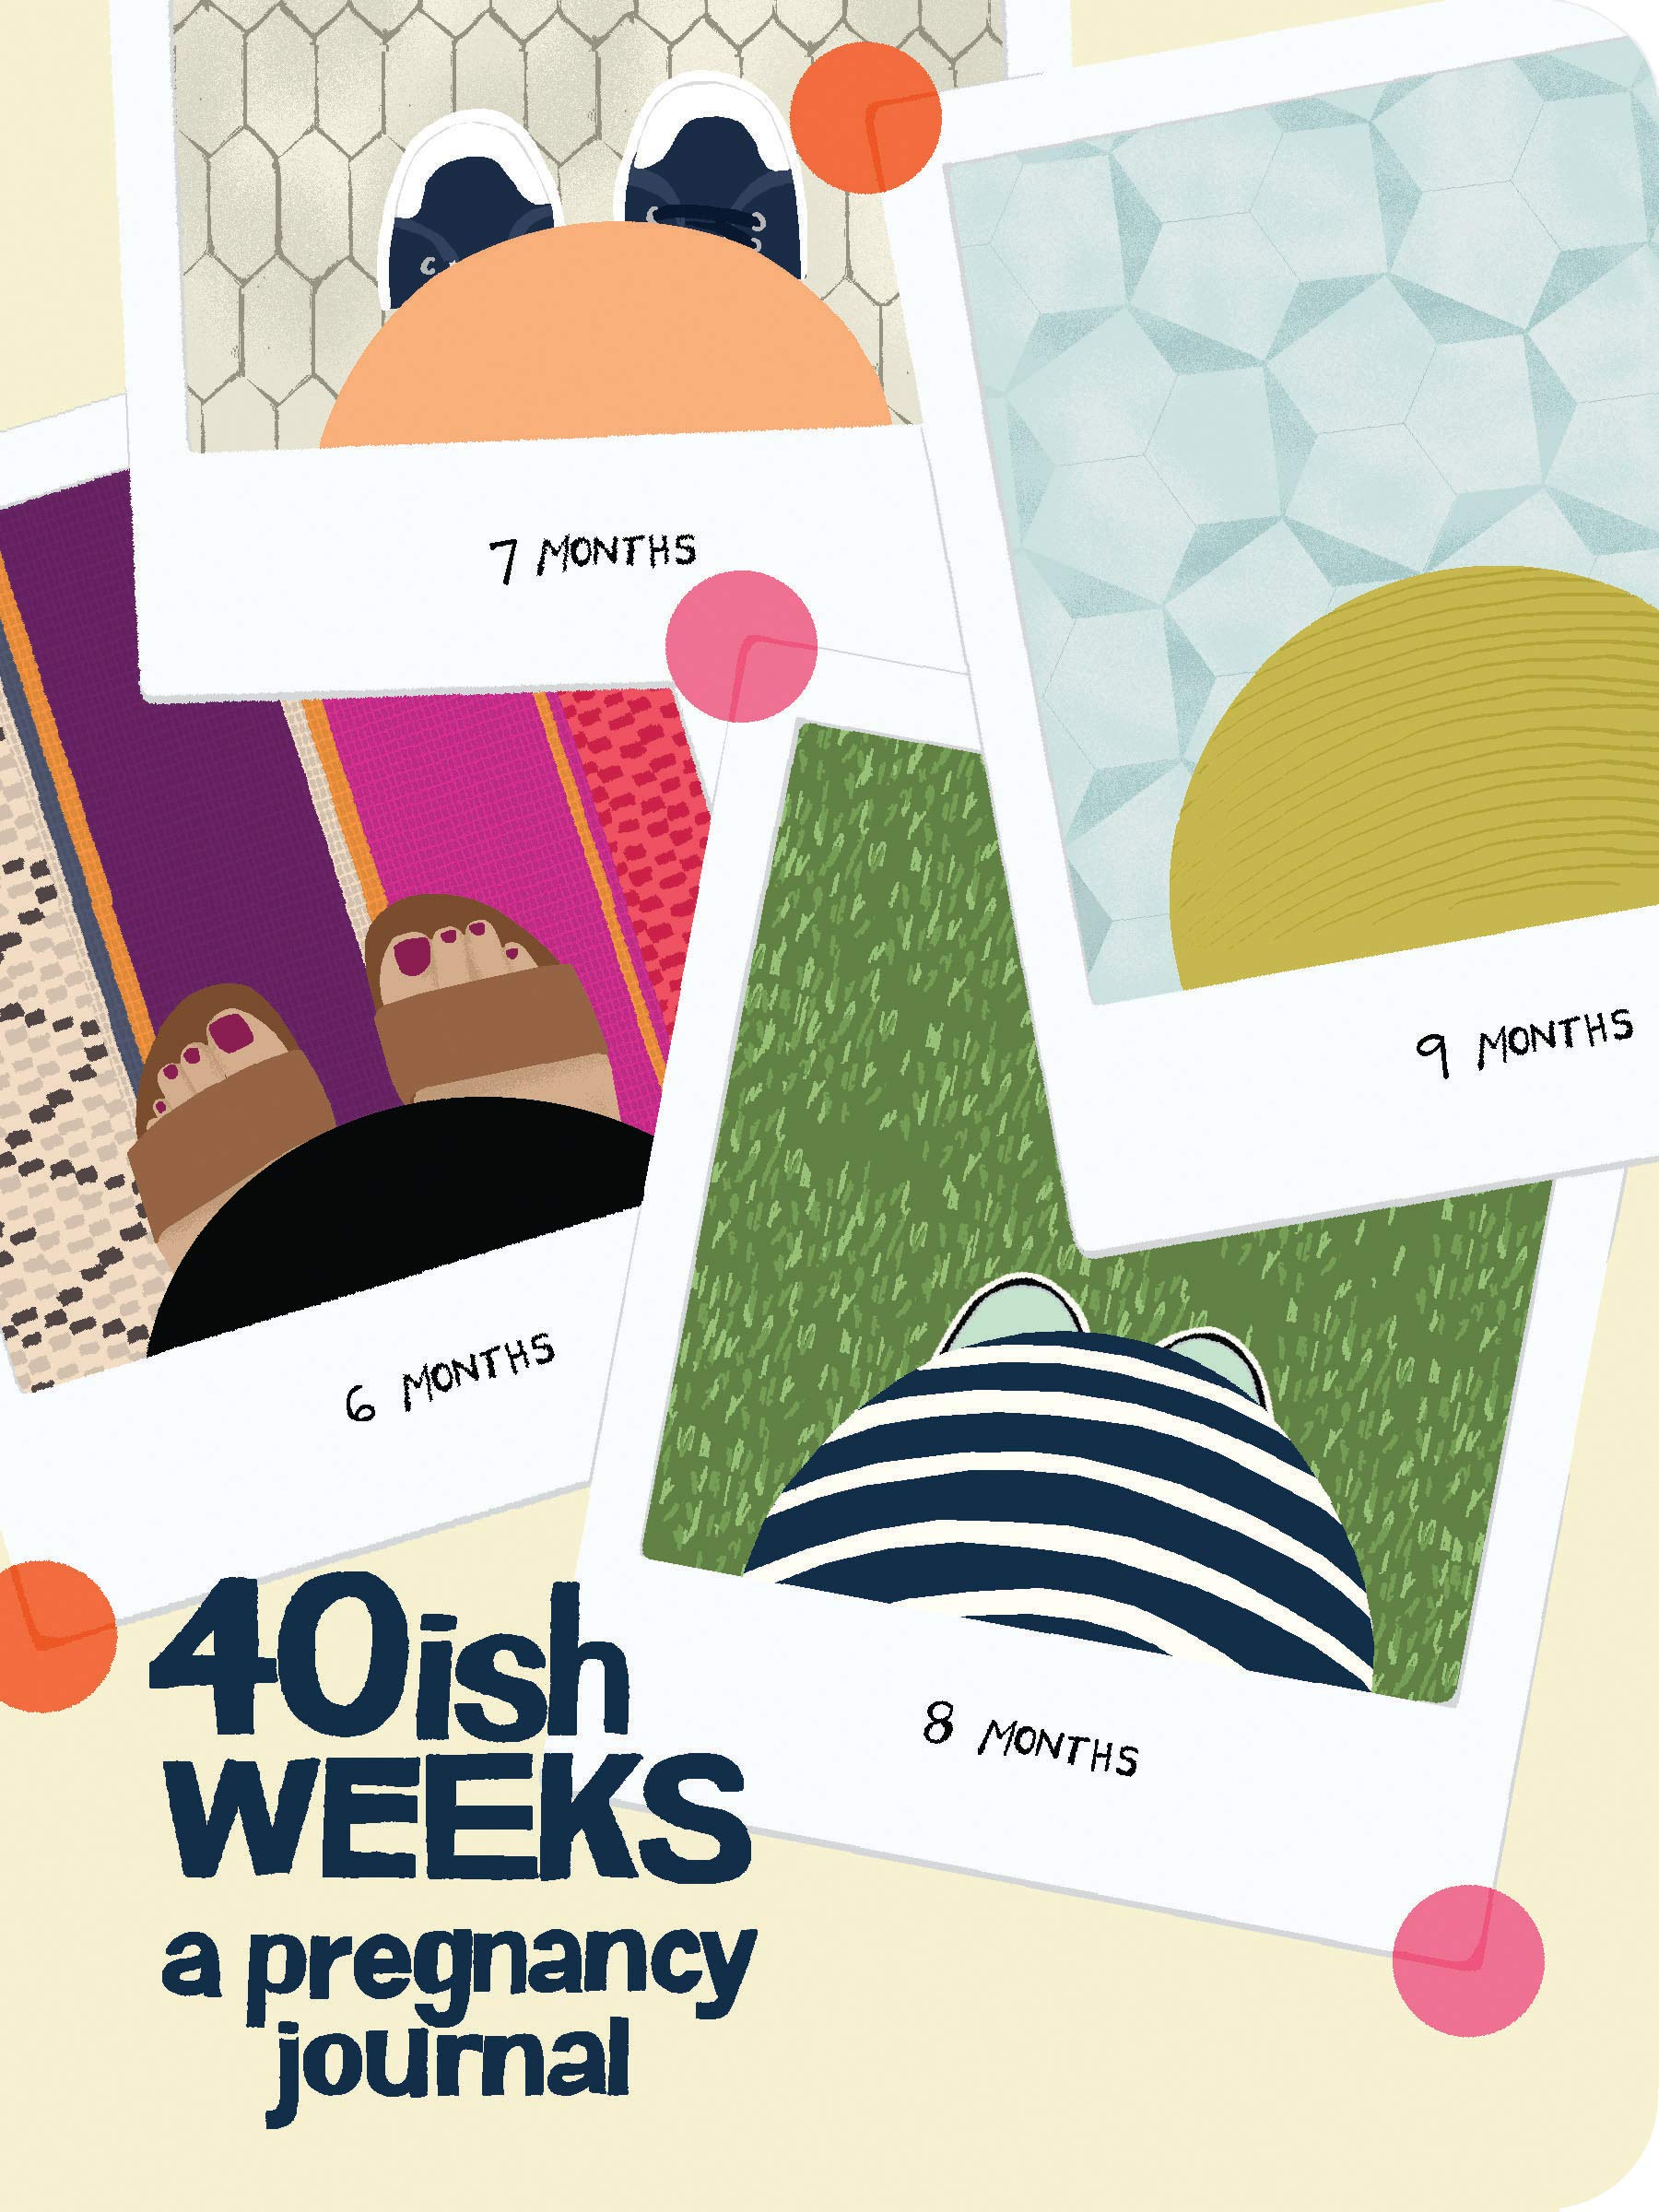 Amazon.com: 40ish Weeks: A Pregnancy Journal (Pregnancy Books, Pregnancy  Gifts, First Time Mom Journals, Motherhood Books) (9781452139159): Pocrass,  Kate: Books